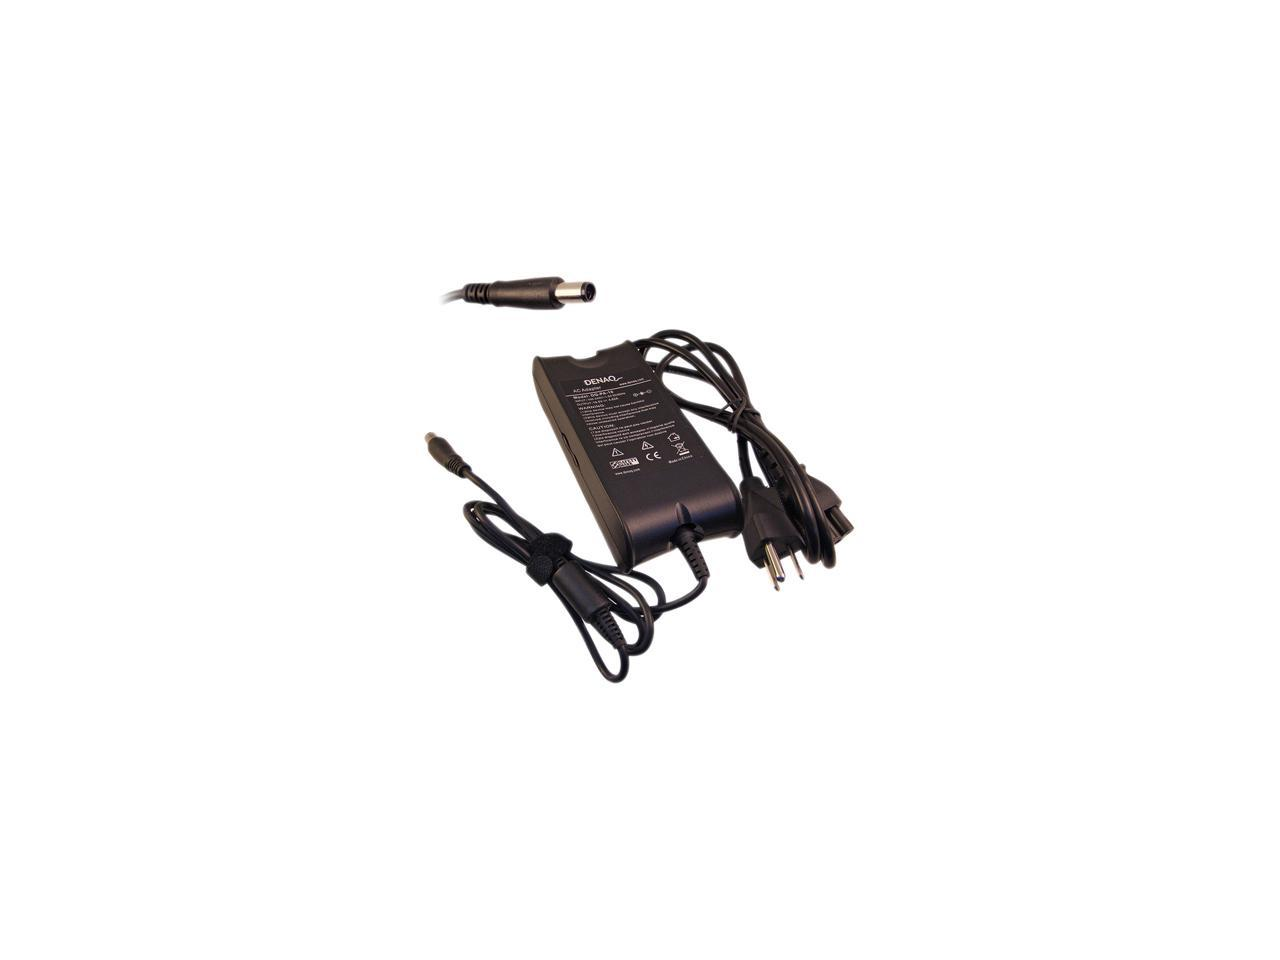 DENAQ DQ-PA-10-7450 4.62A 19.5V AC Adapter for Dell PA-10